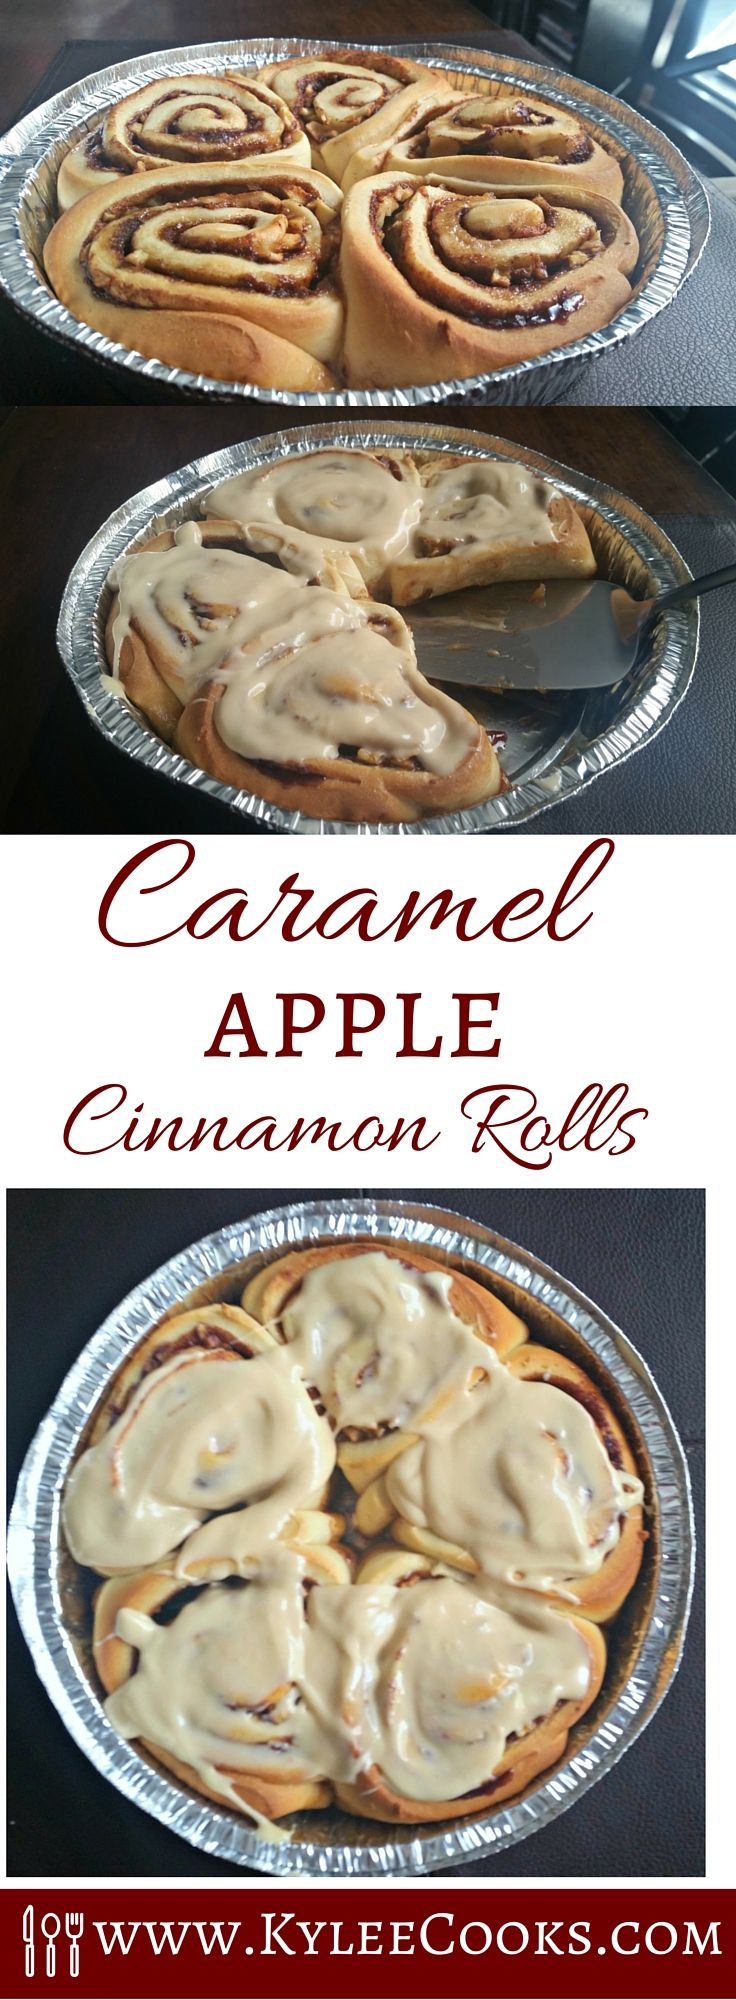 A delicious new take on an old favorite, these caramel apple cinnamon rolls are perfect for sharing.